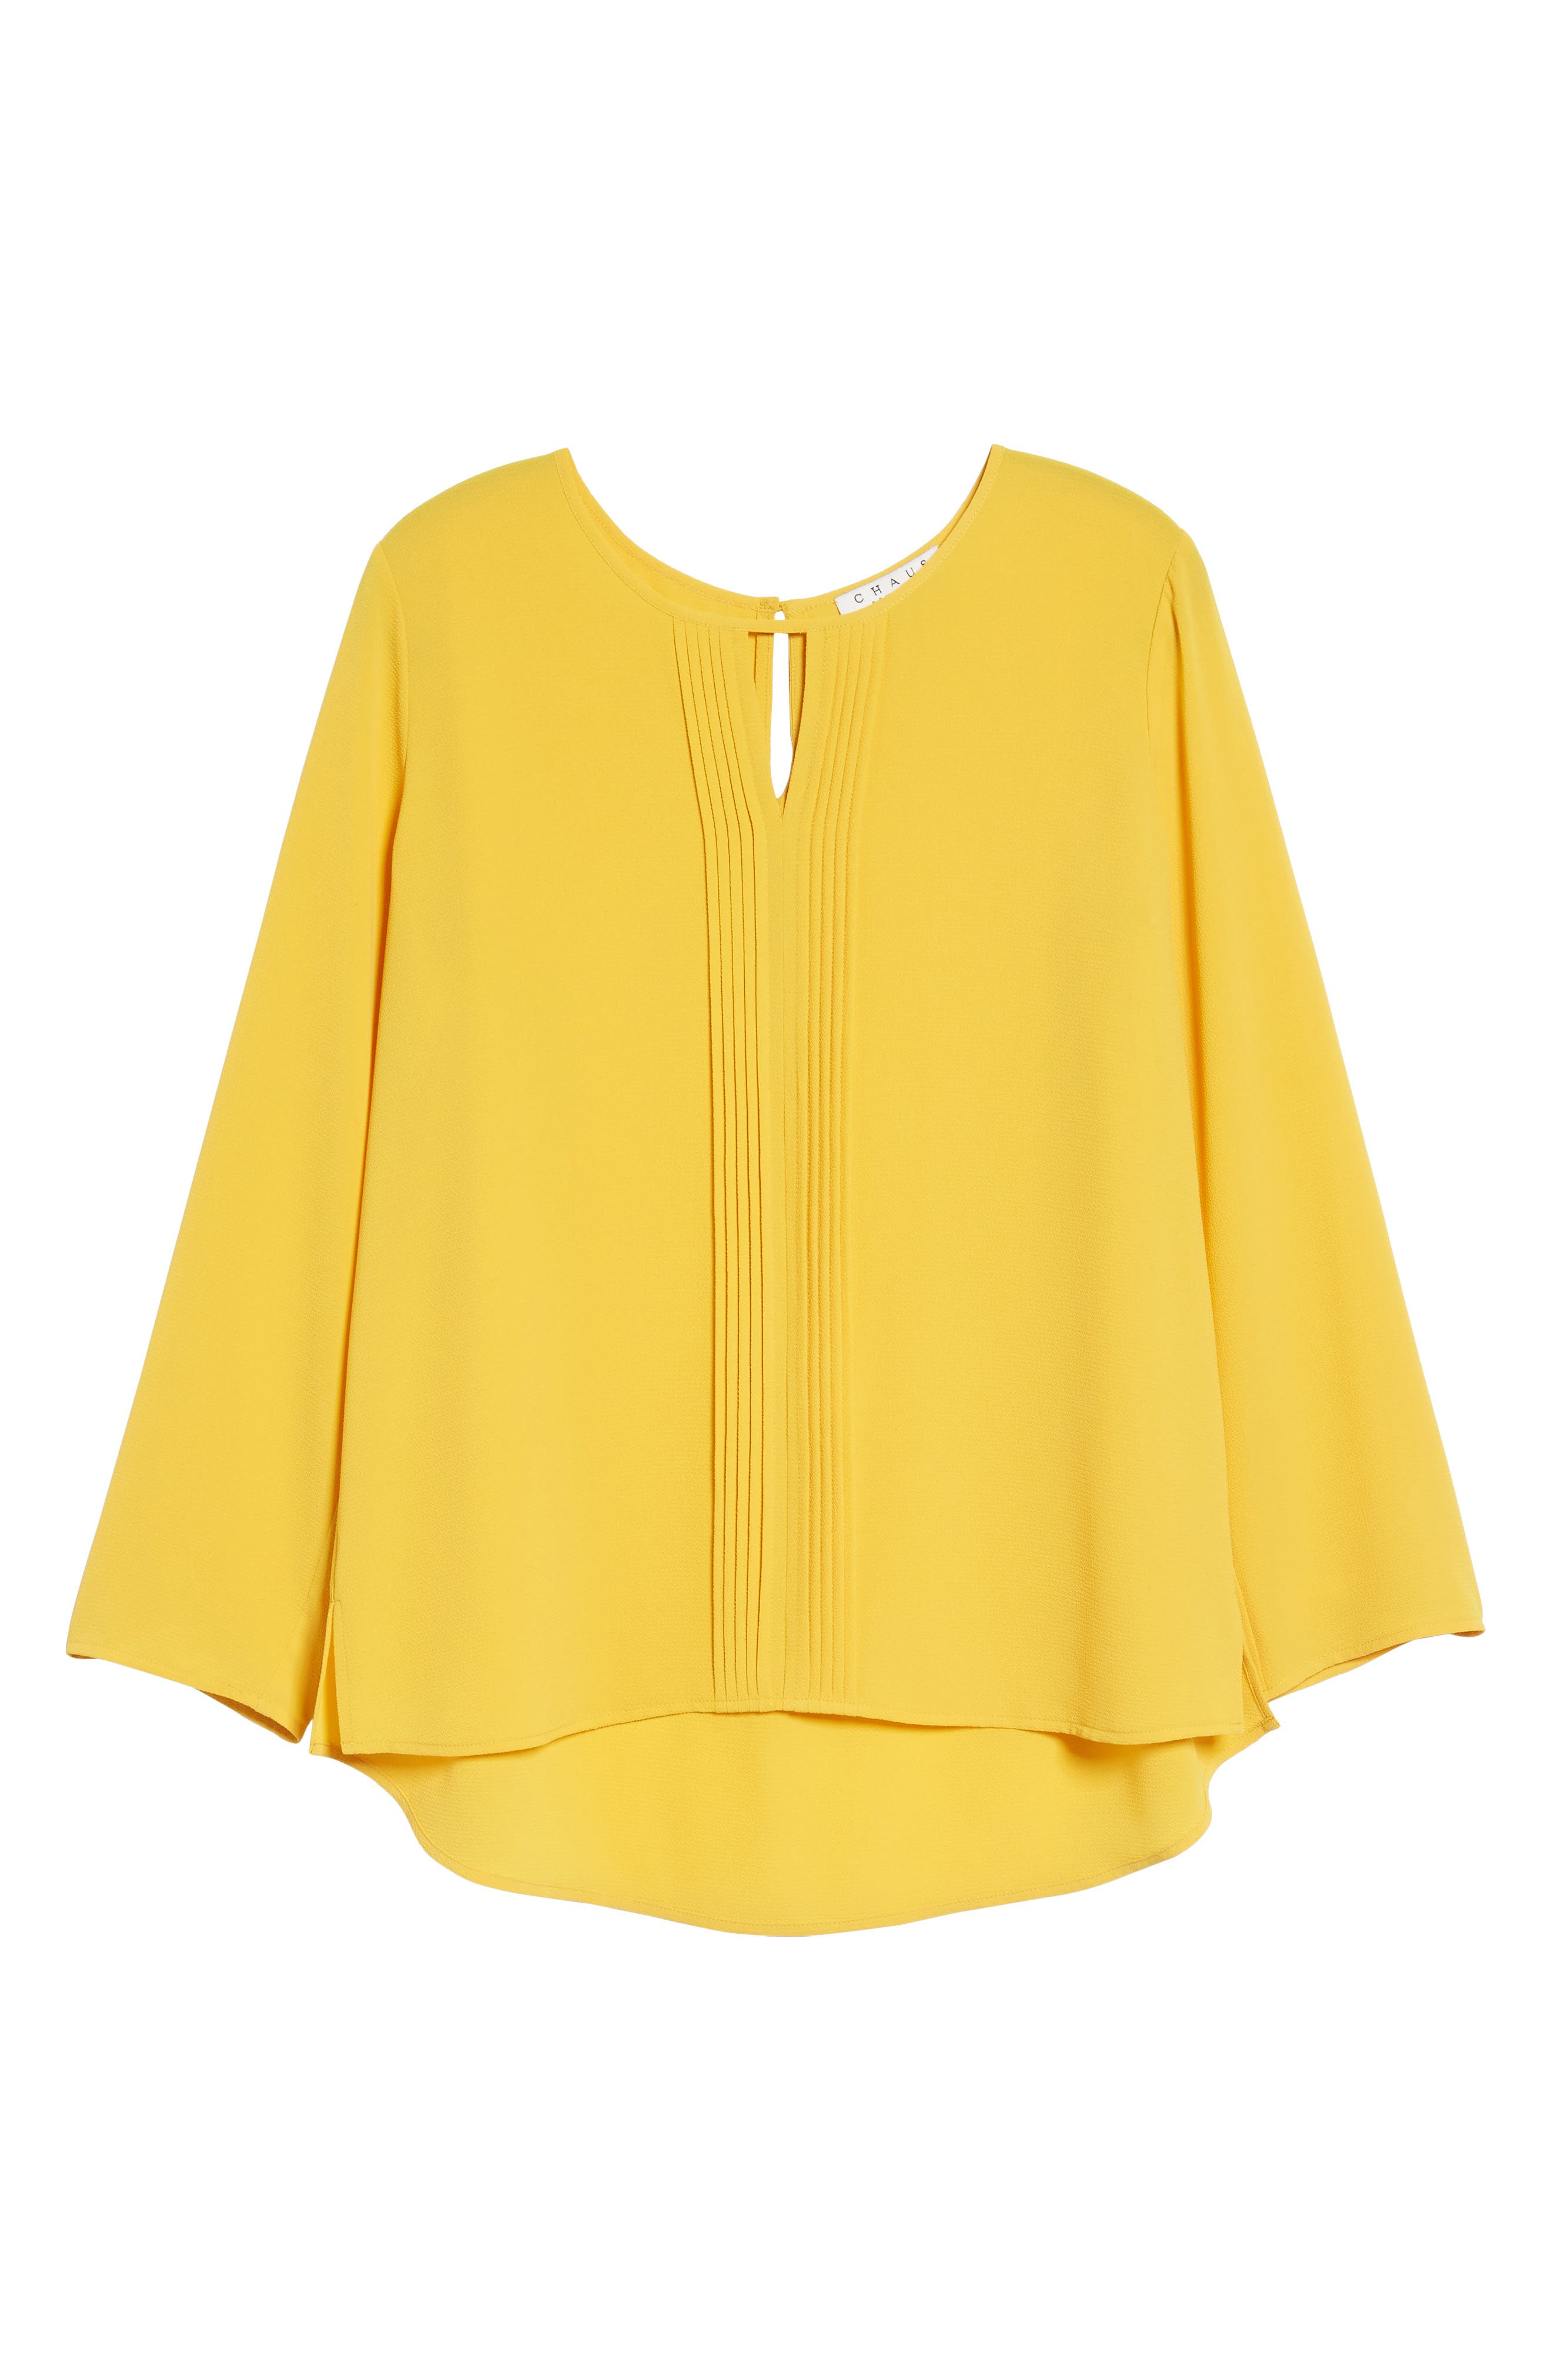 Pintuck Front Blouse,                             Alternate thumbnail 6, color,                             730